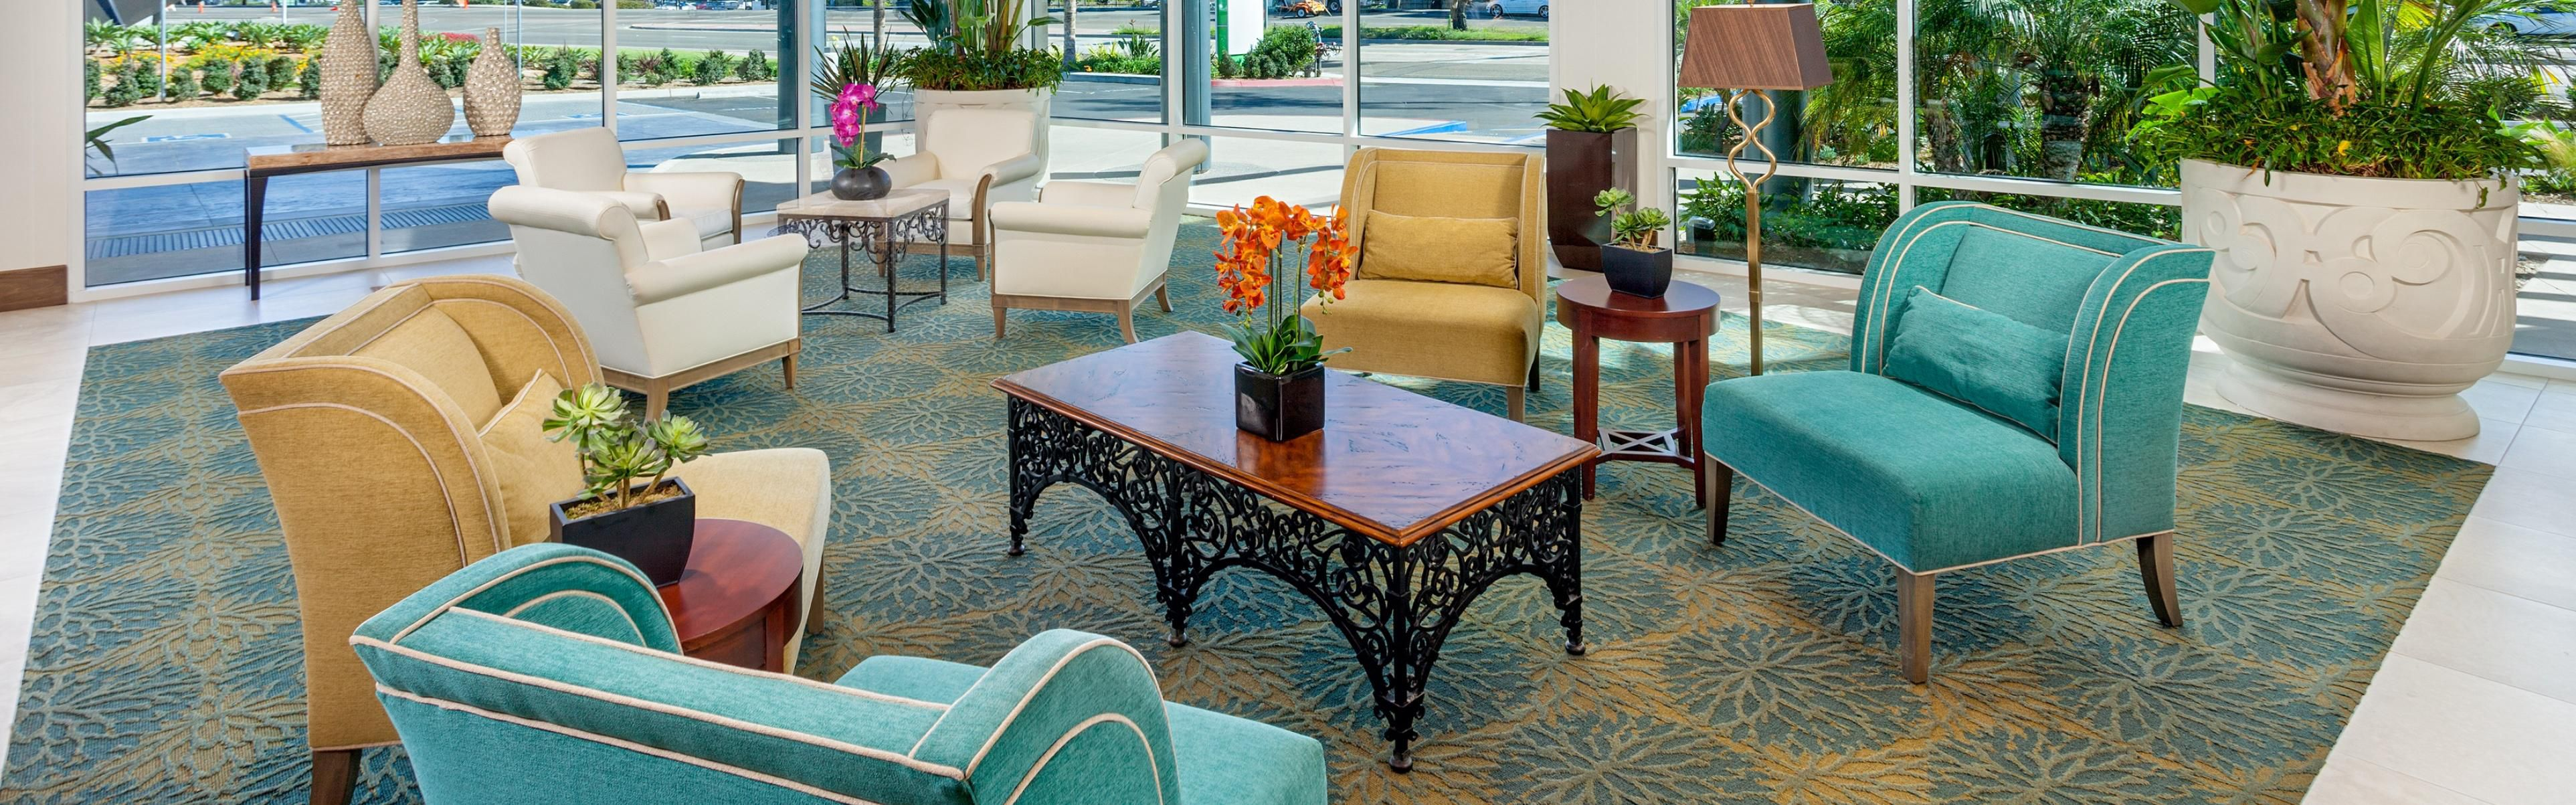 Our Stunning Lobby Area Welcomes You In Style And Comfort; Outdoor Patio ...